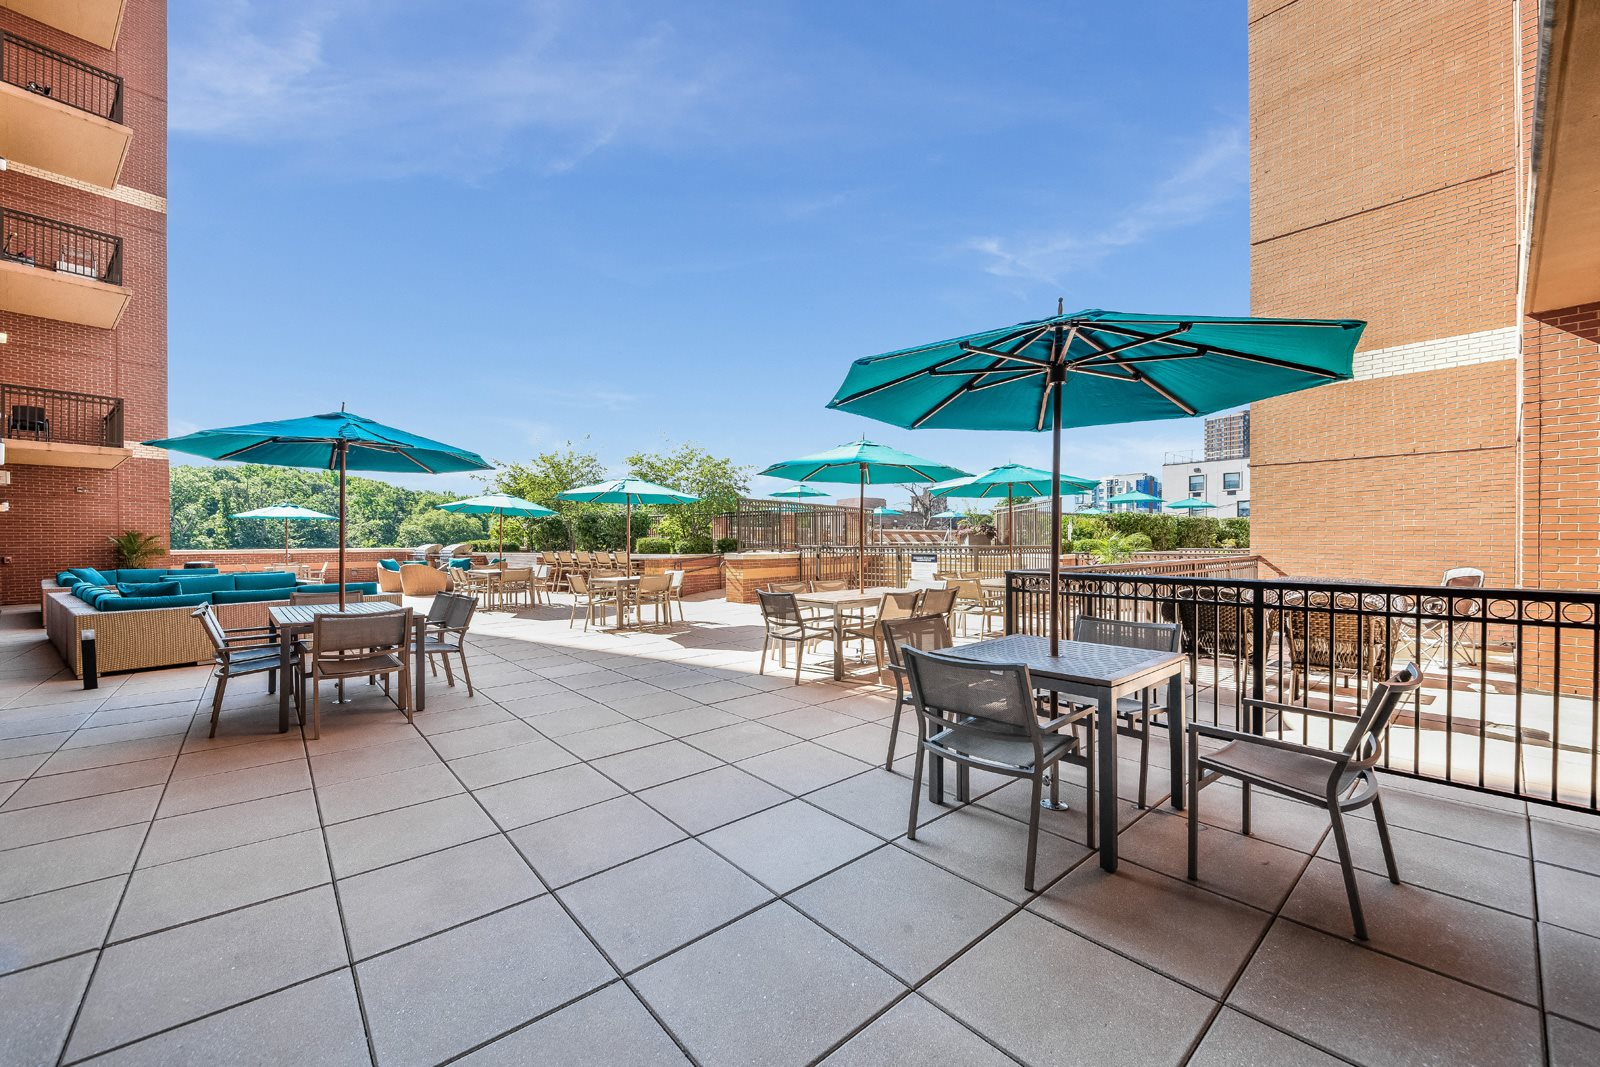 Outdoor Lounge at Twenty50 by Windsor, 2050 Central Road, NJ